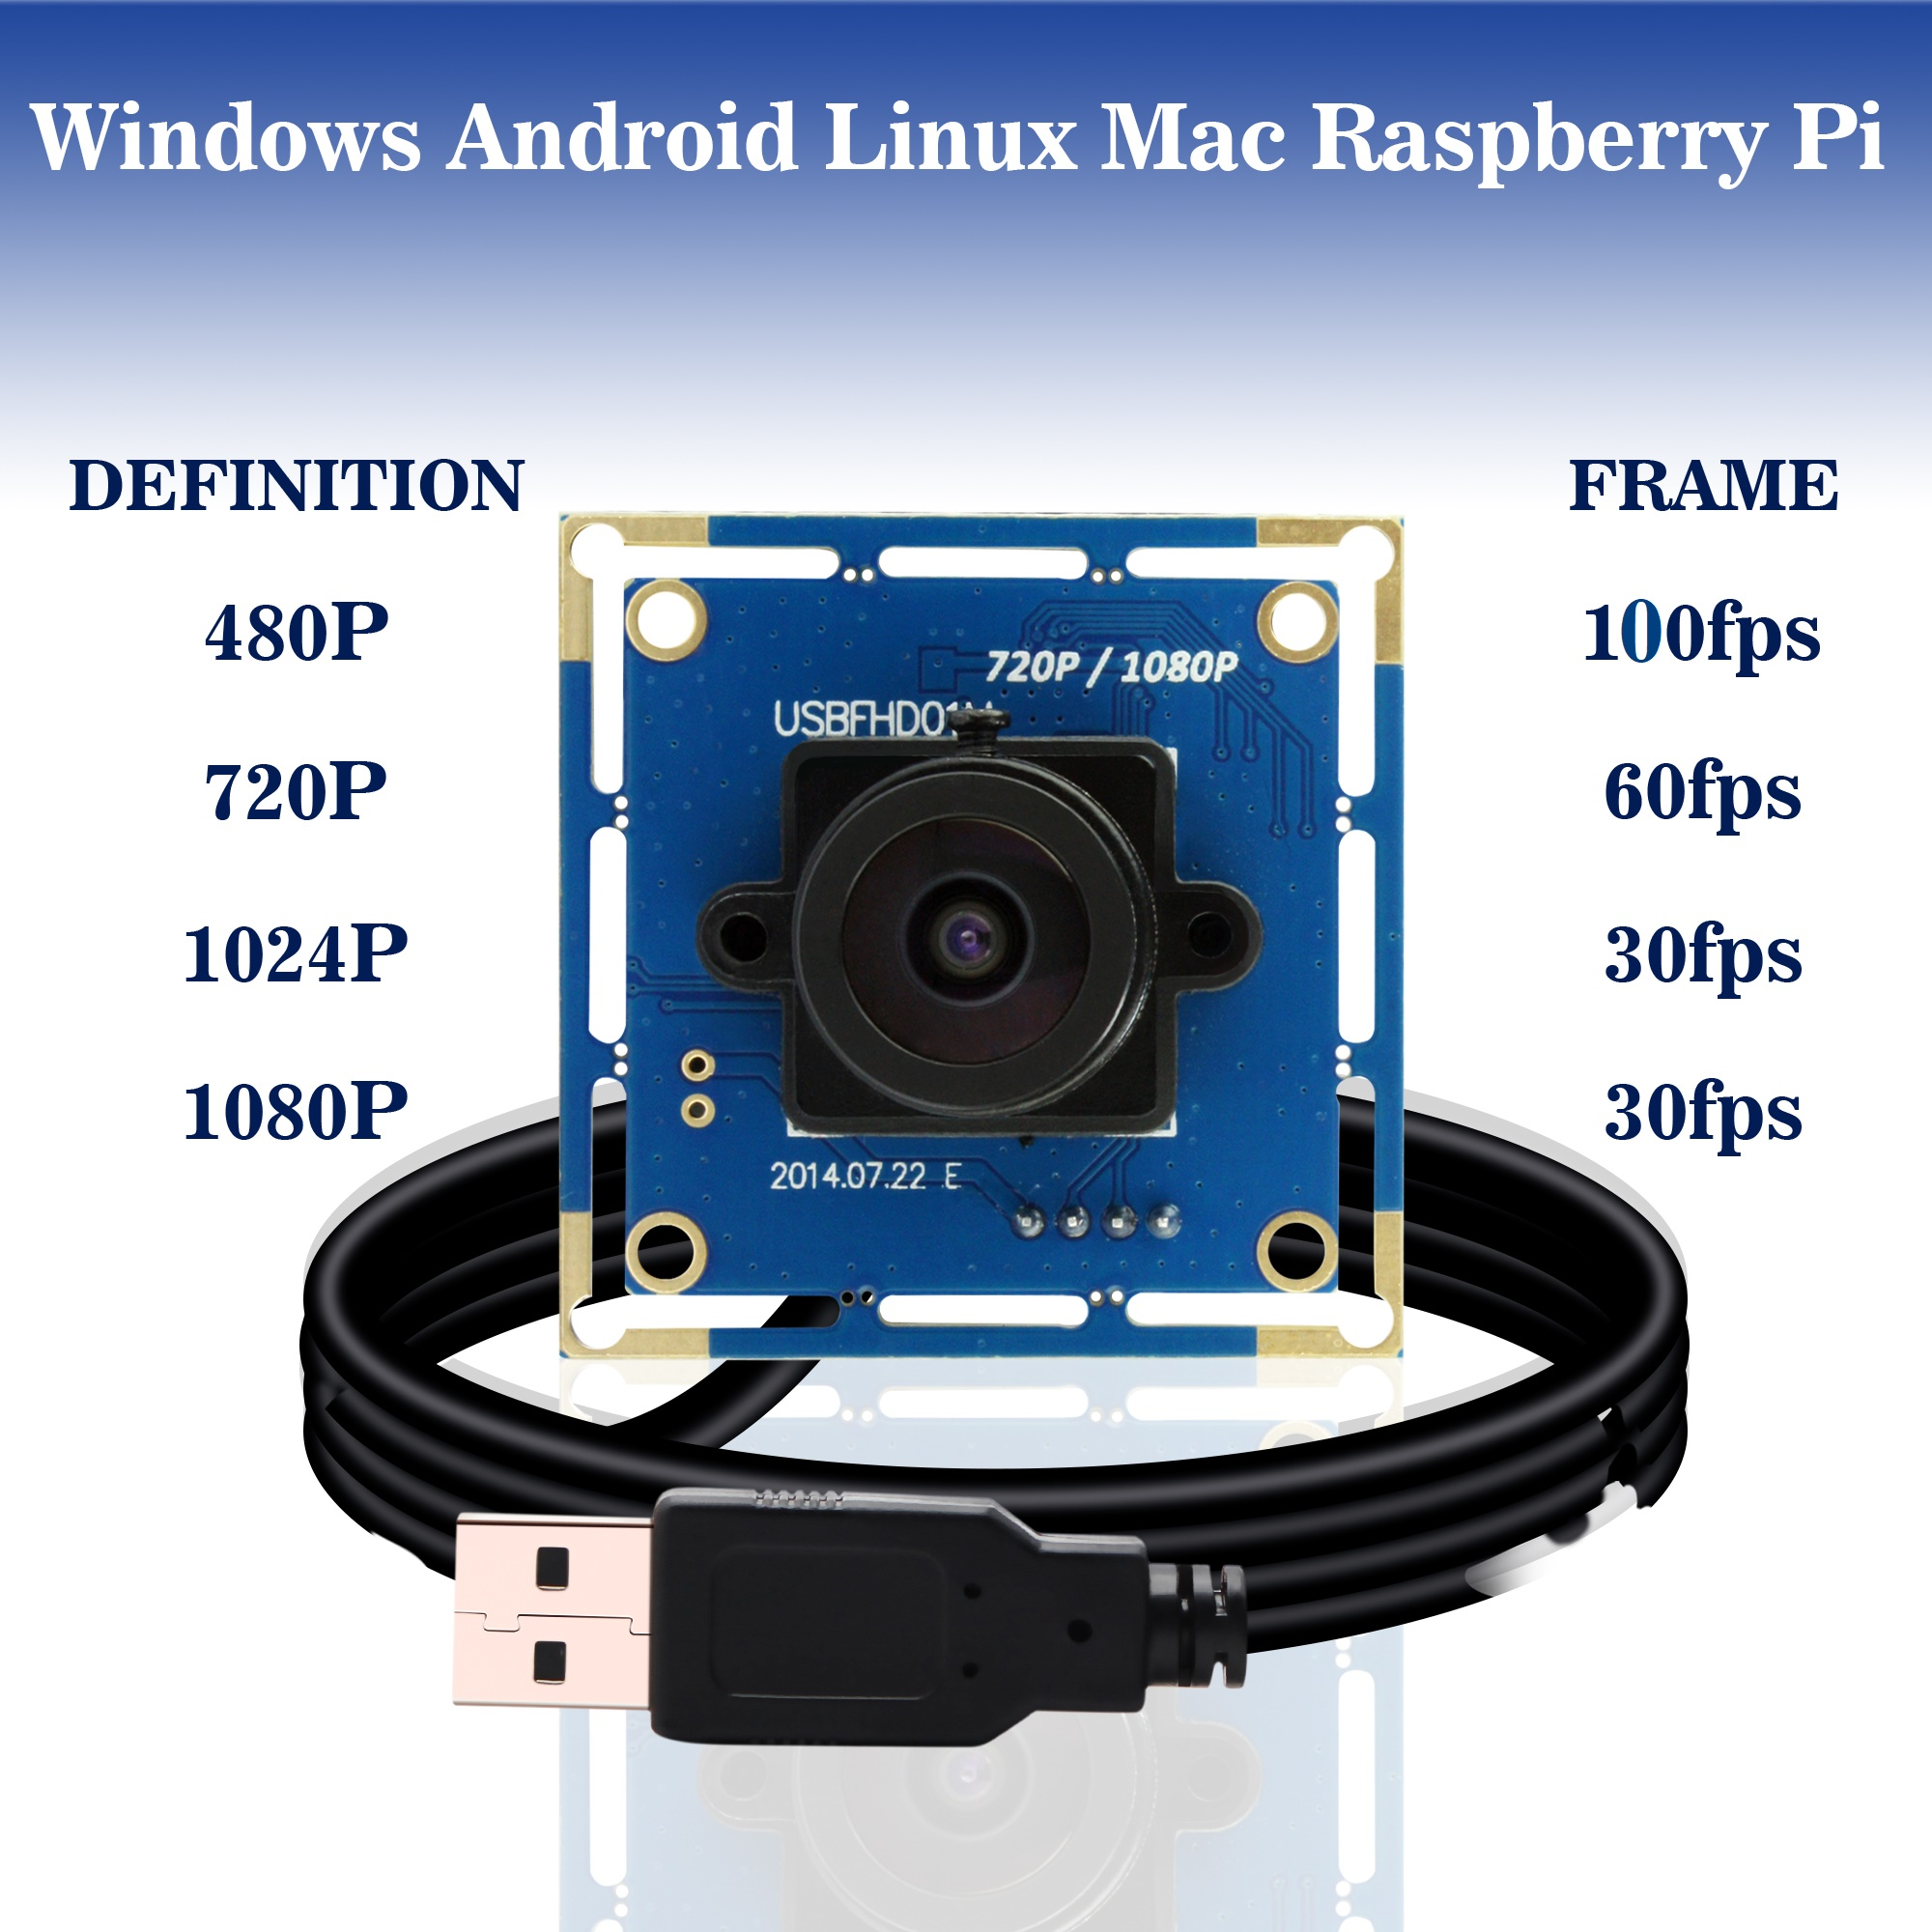 1080p Full Hd MJPEG 30fps / 60fps / 100fps Высокая хуткасць CMOS OV2710 Шырокі кут Mini CCTV Android Linux UVC WebCam Модуль камеры USB